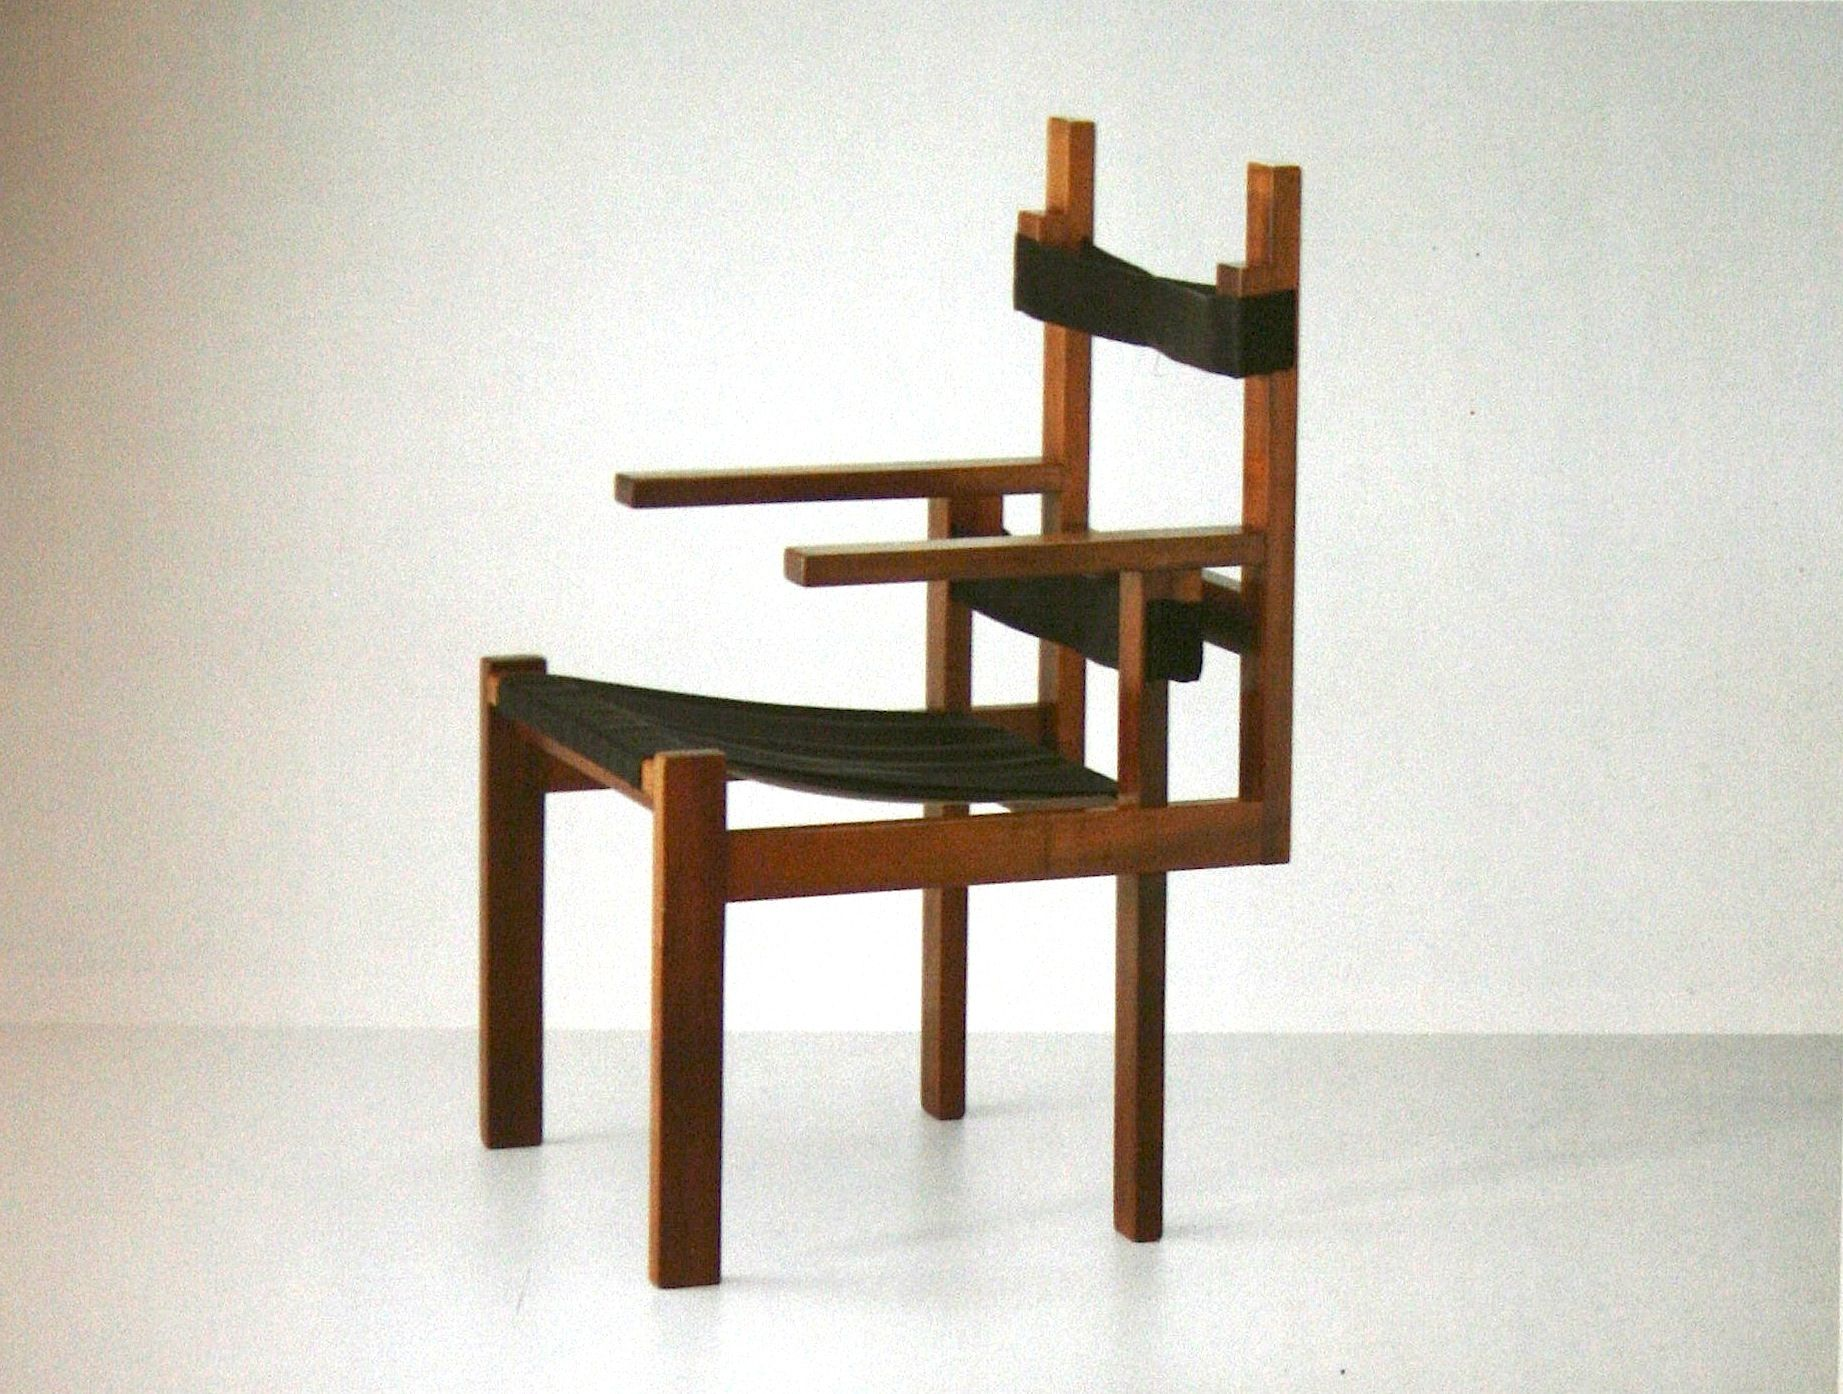 Furniture Design History marcel breuer wood slat chair | history of interiors | pinterest